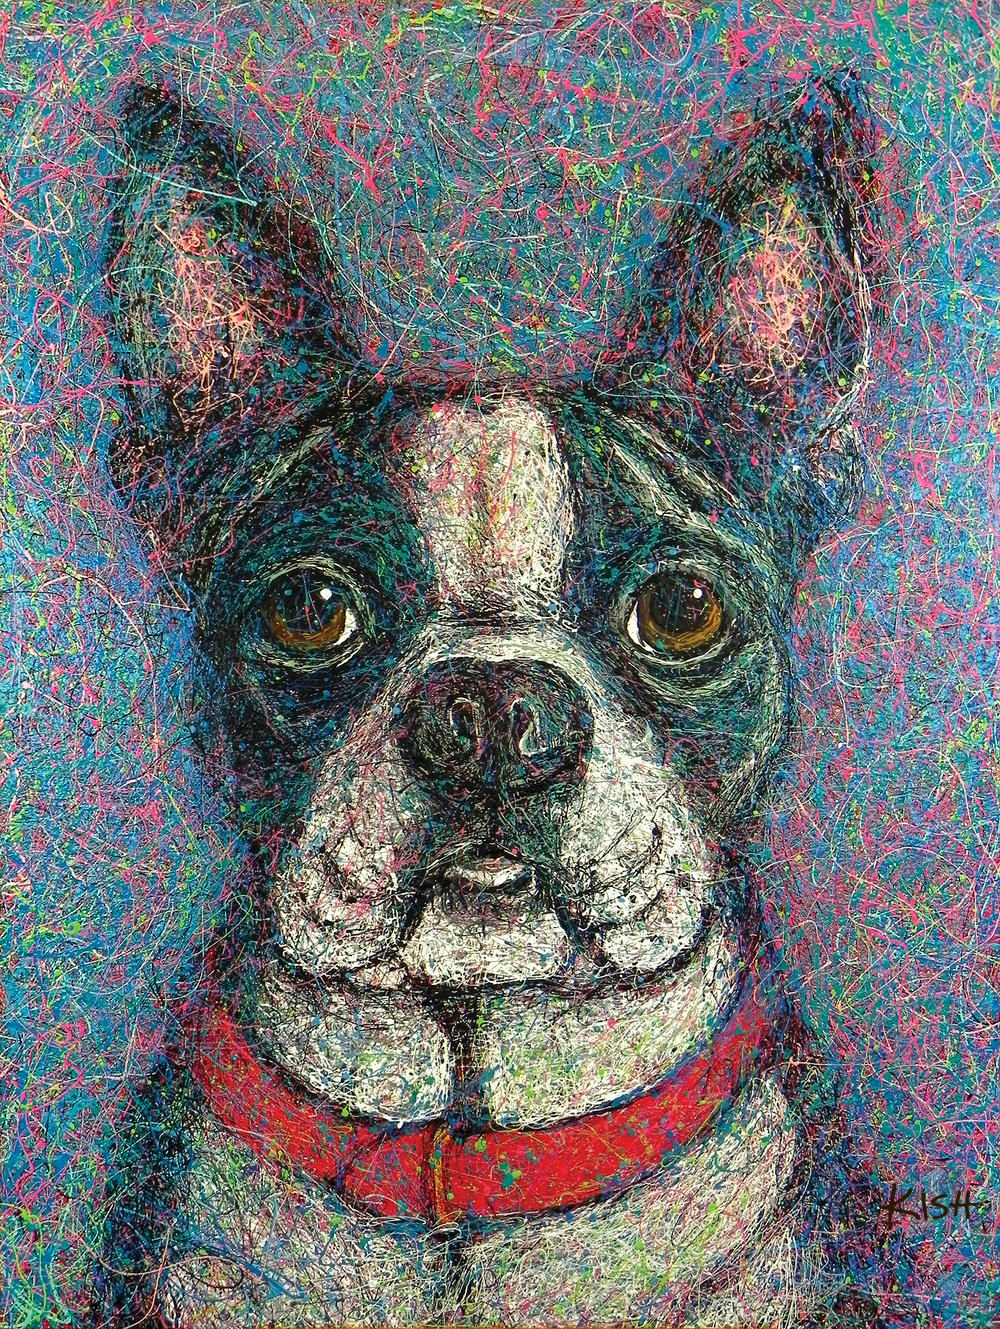 BOSTON TERRIER - ORIGINAL ART 36 x 48—$8,000Art Print (giclee)                      16 x 20 ................$125                                               18 x 24 .................$150Canvas Print (giclee)               16 x 20 ................$325                                               30 x 40 ...............$750